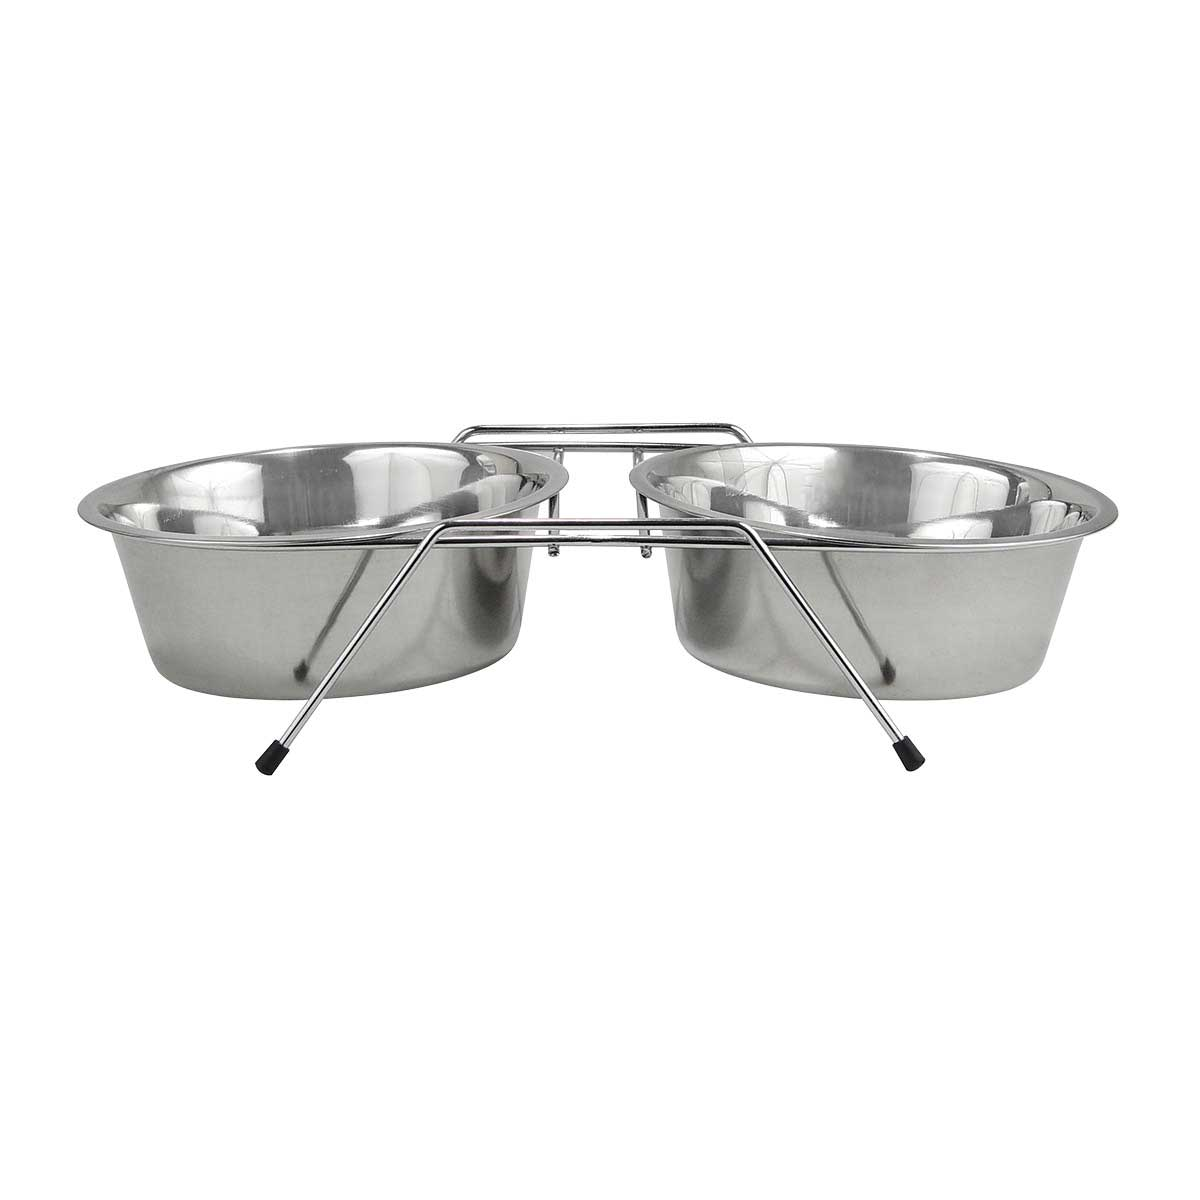 Indipets Stainless Steel Double Diner With 1 Pint Bowls